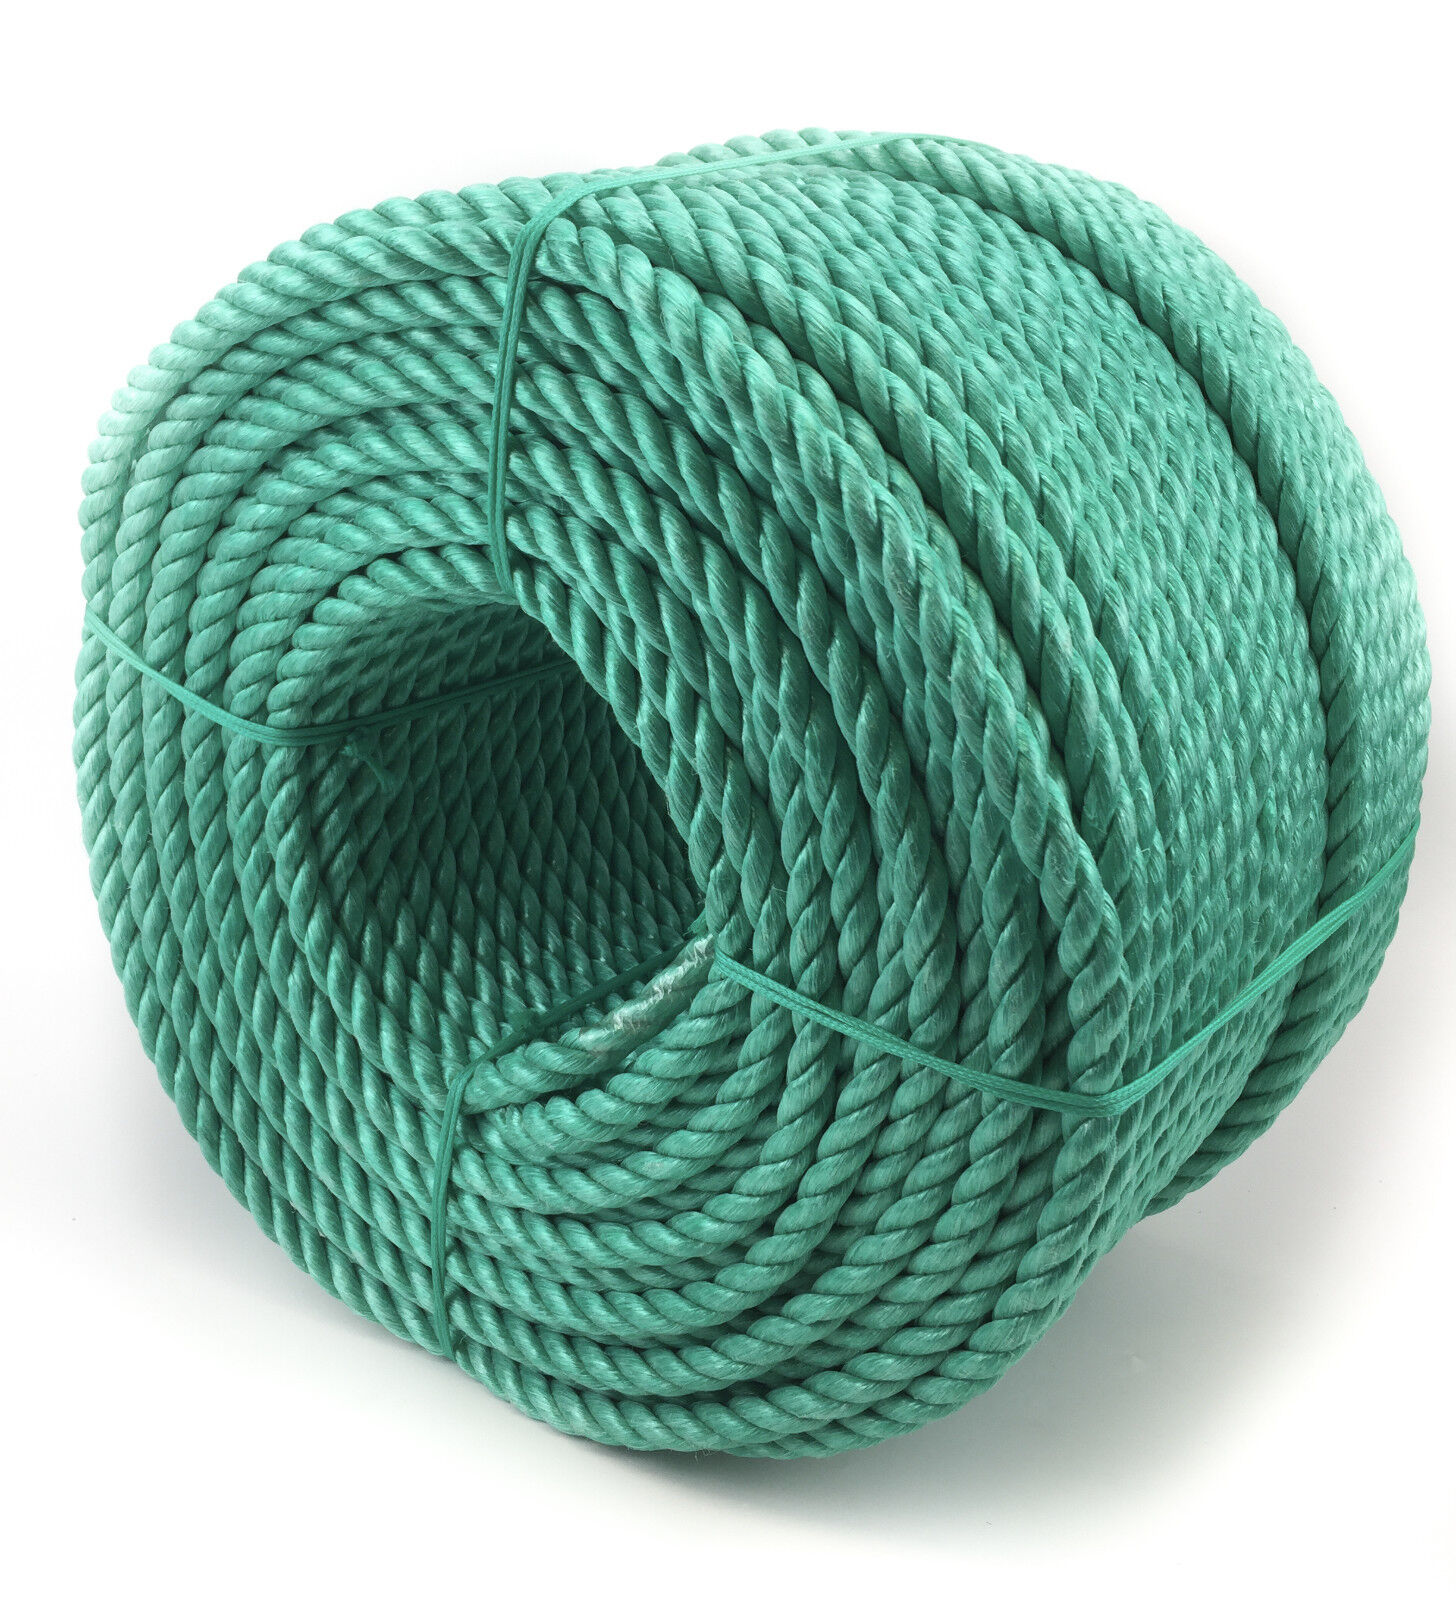 18mm Green Polypropylene Rope x 40 Metres, Poly Rope Coils, Cheap Nylon Rope